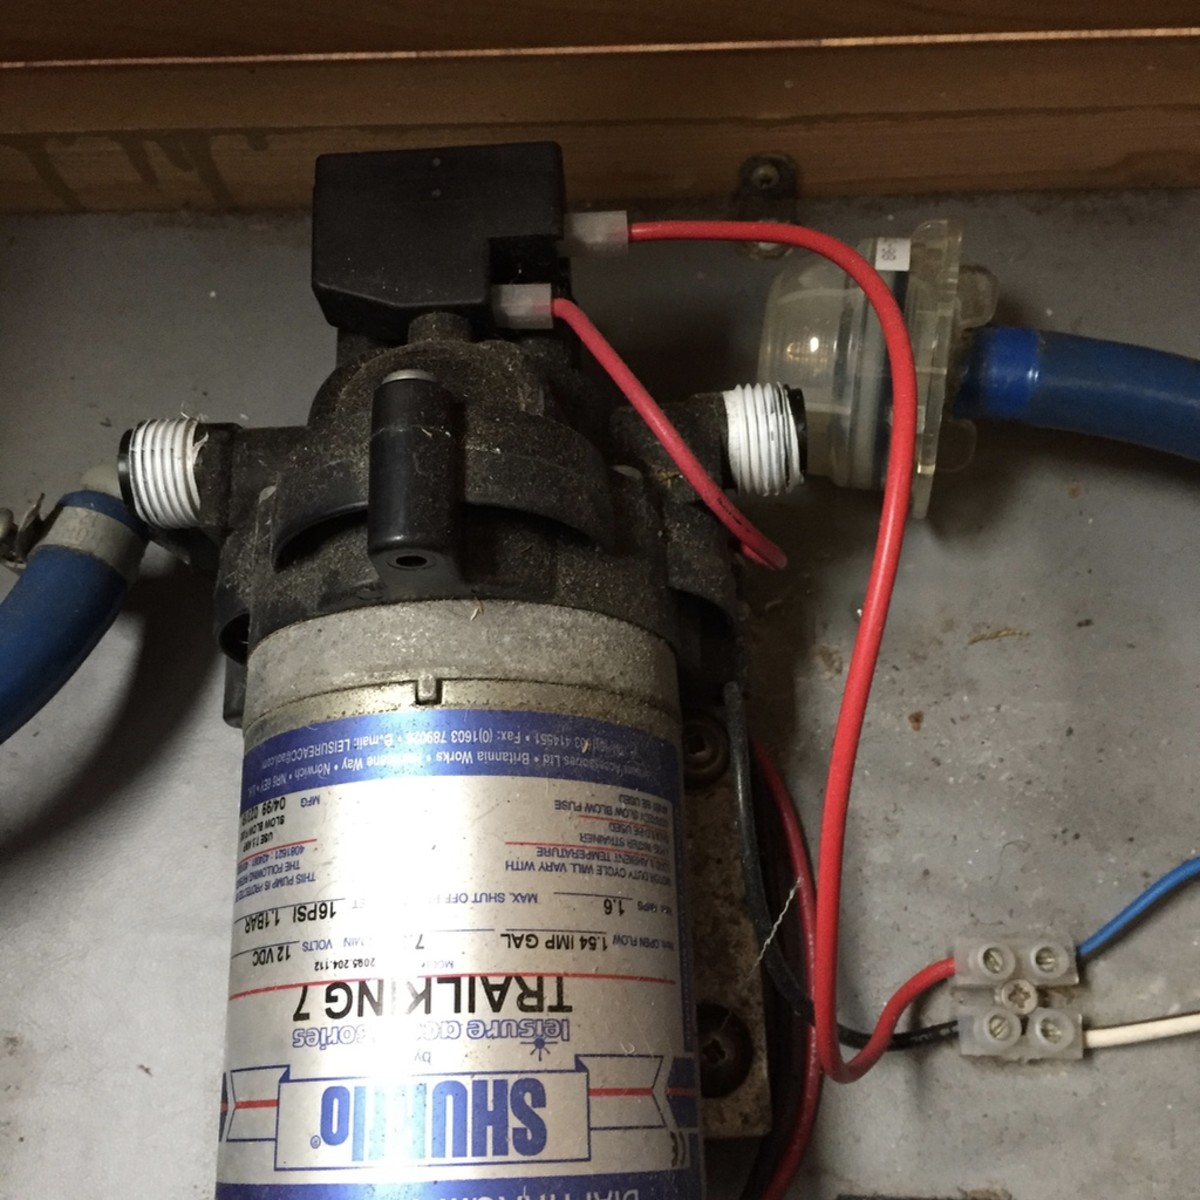 The Shurflo pump with both water connections removed